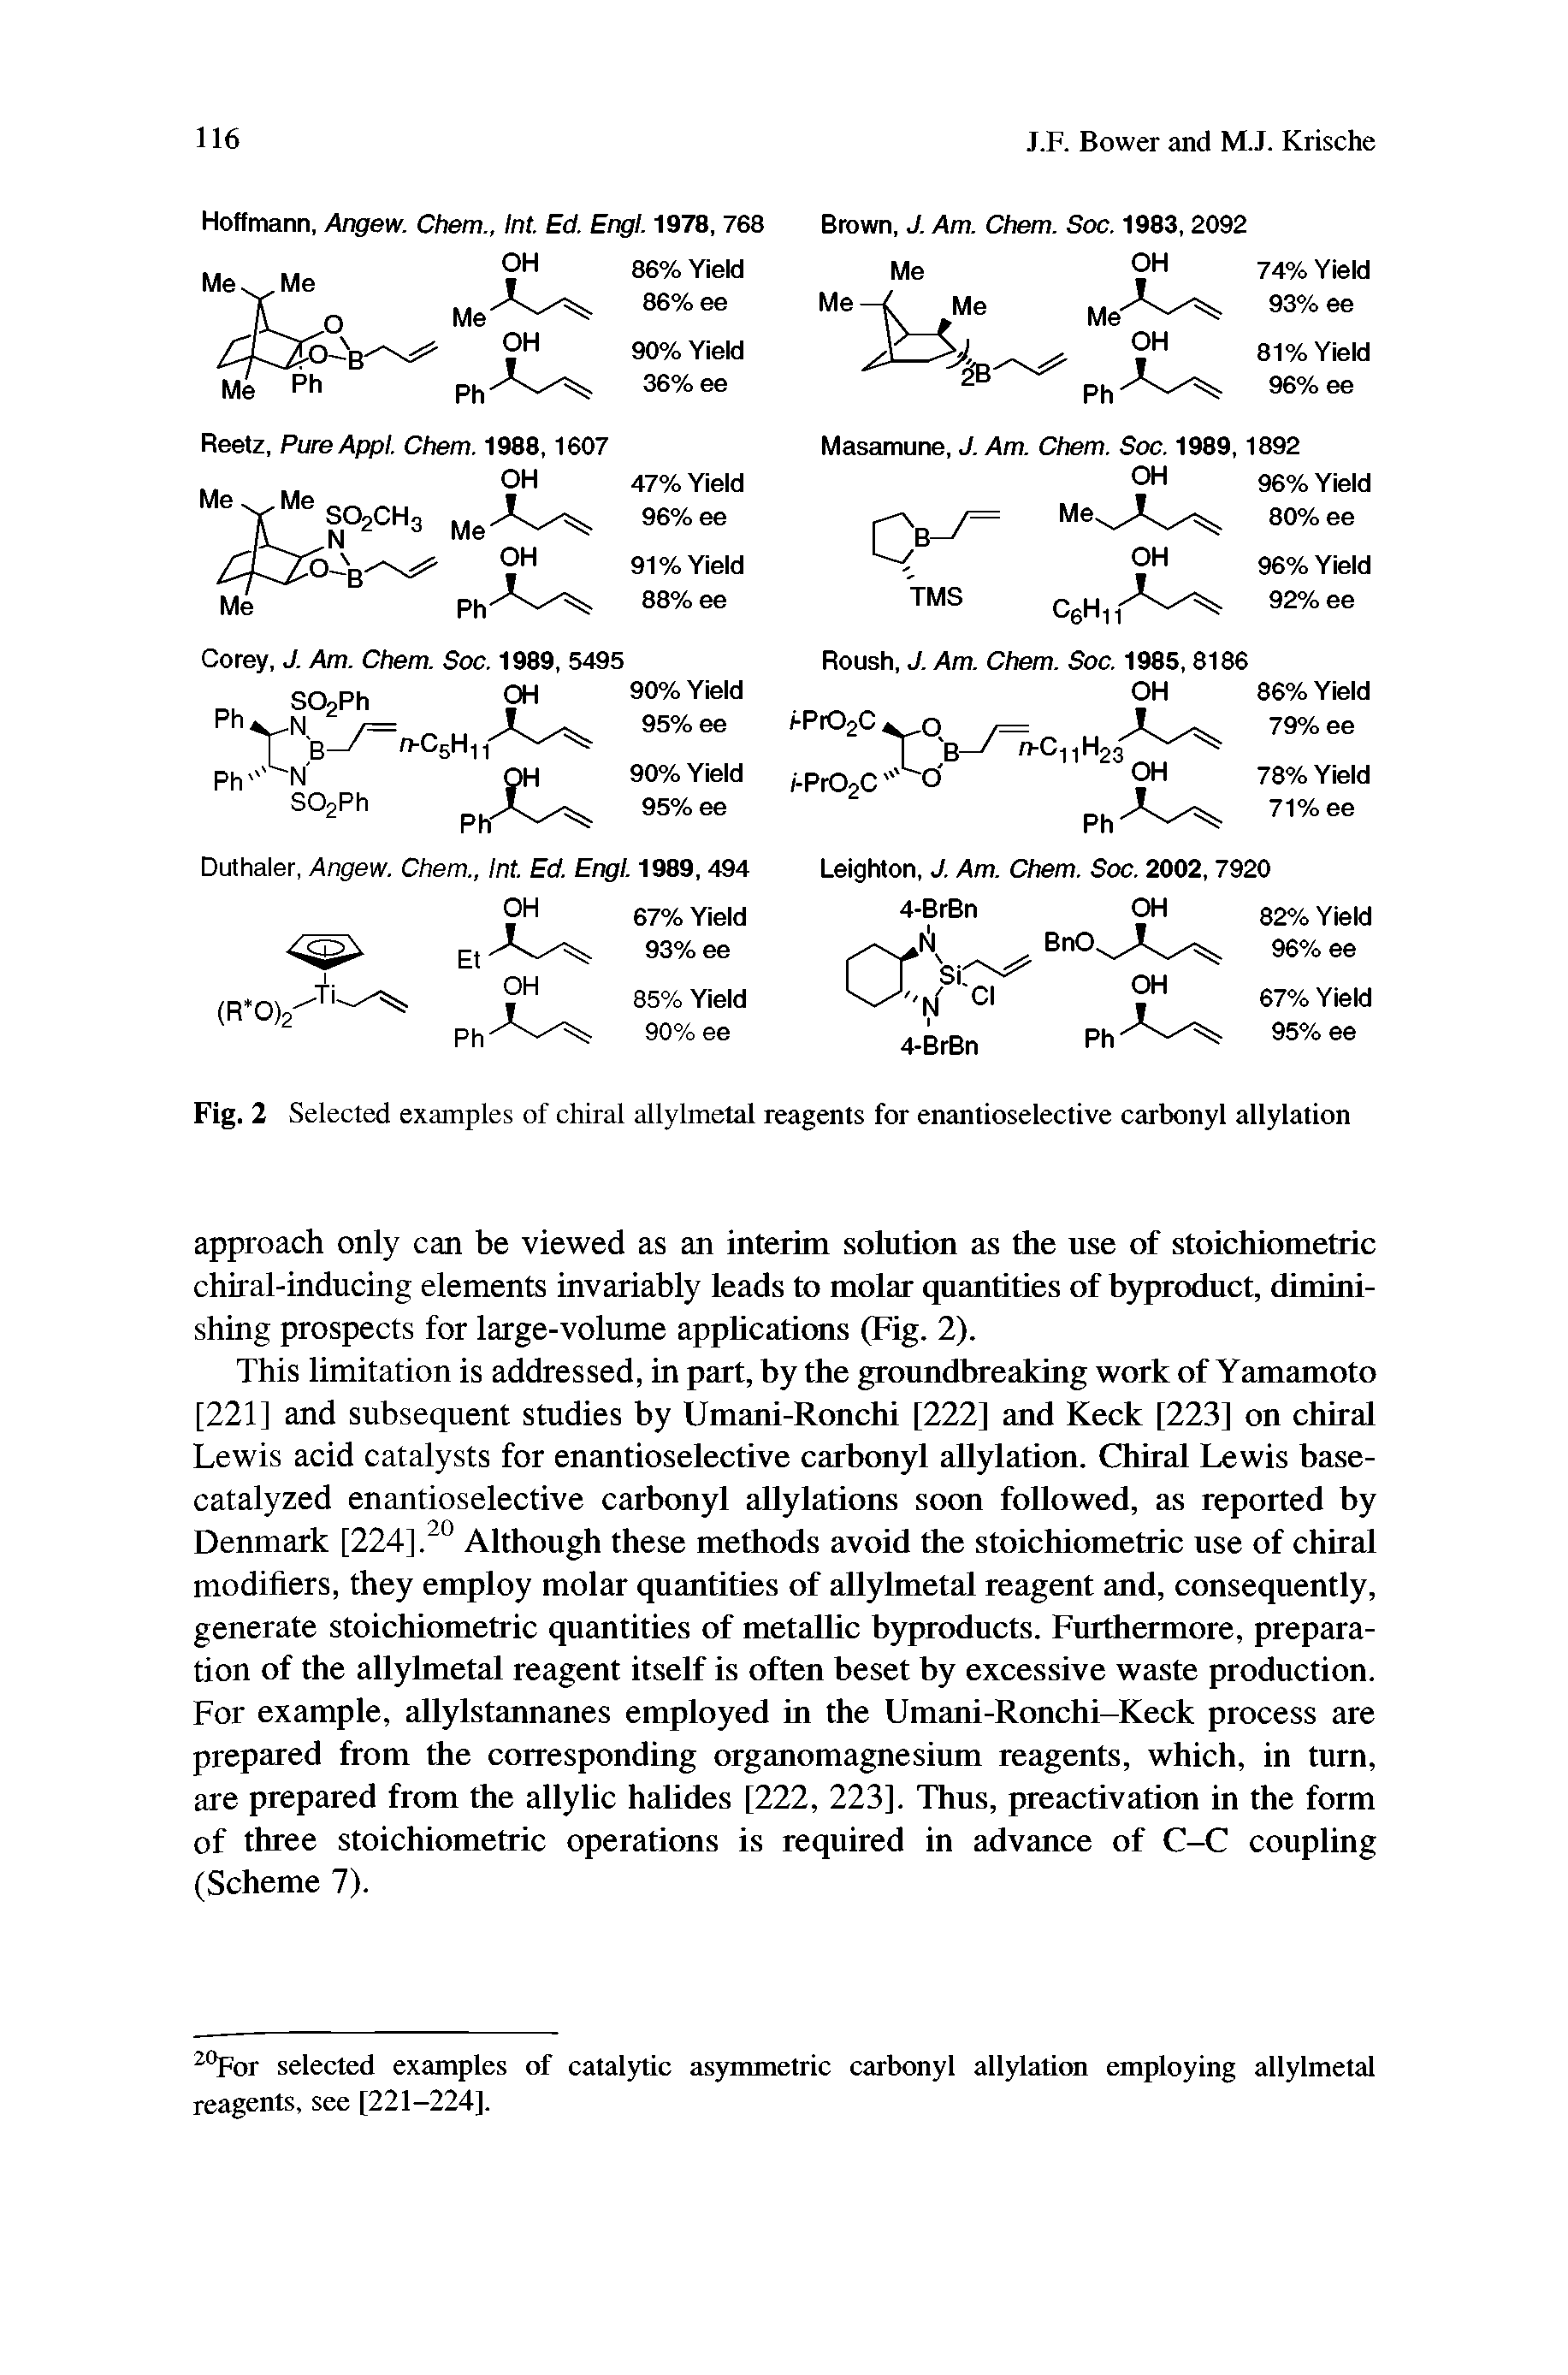 "Fig. 2 <a href=""/info/selected_examples"">Selected examples</a> of <a href=""/info/allylmetal_chiral"">chiral allylmetal</a> reagents for enantioselective carbonyl allylation"